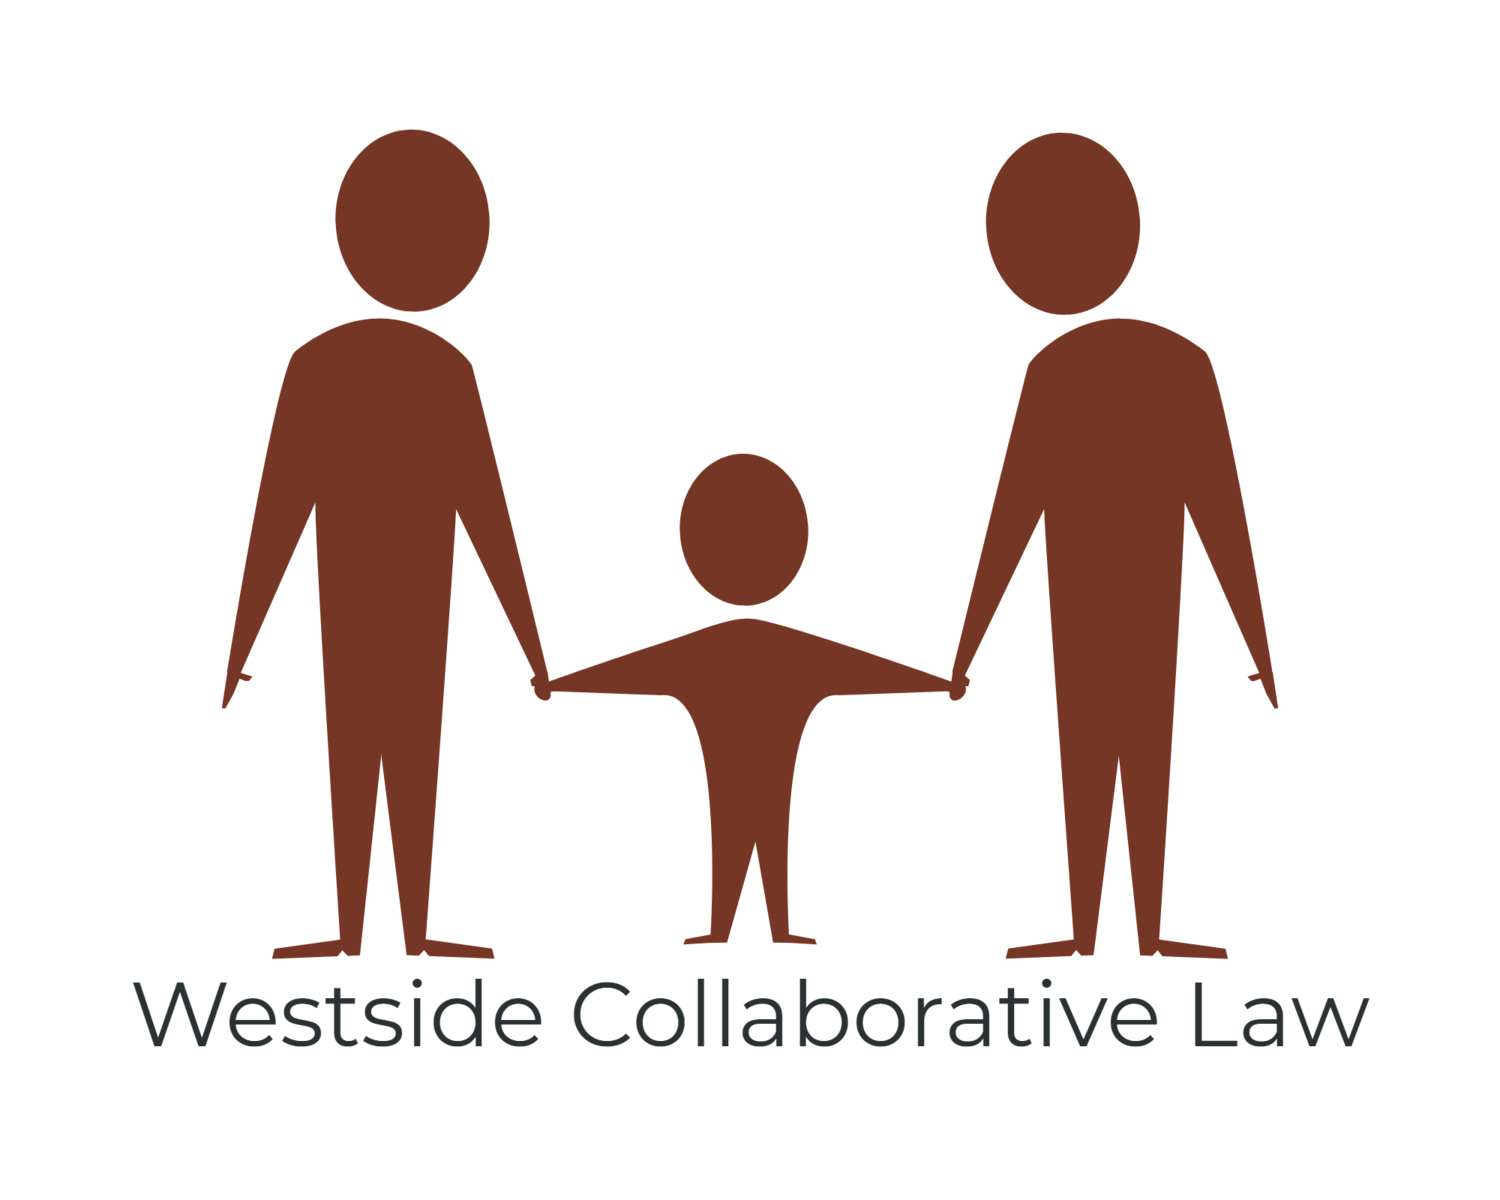 Westside Collaborative Law